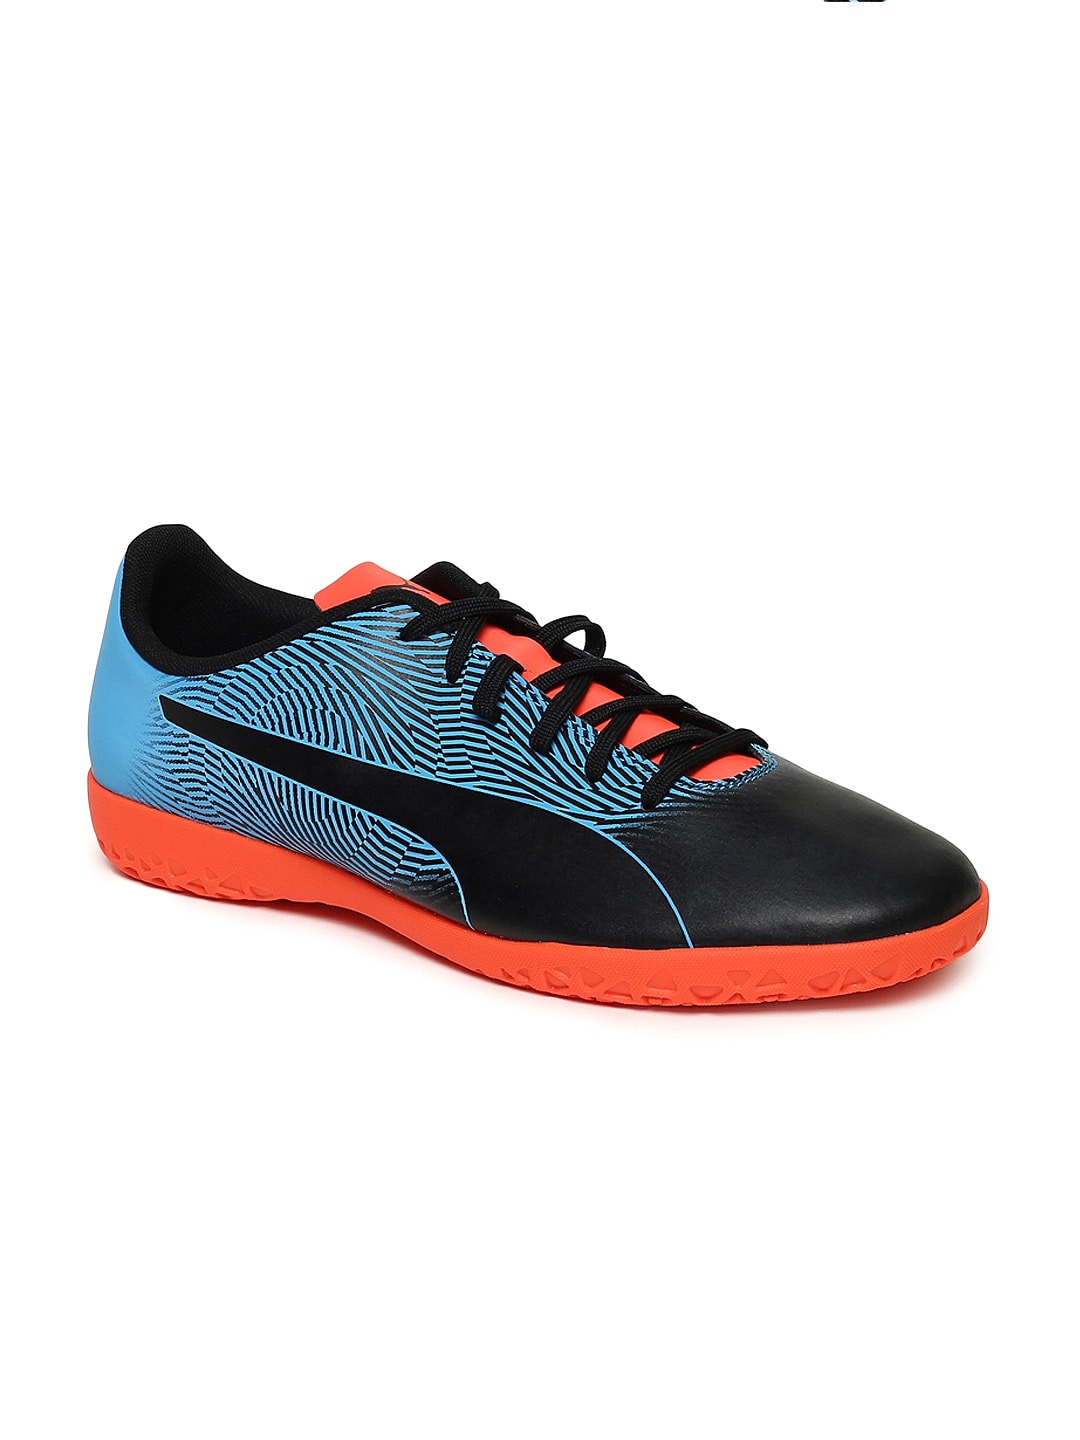 Puma Shoes Buy Puma Shoes For Men Women Online In India